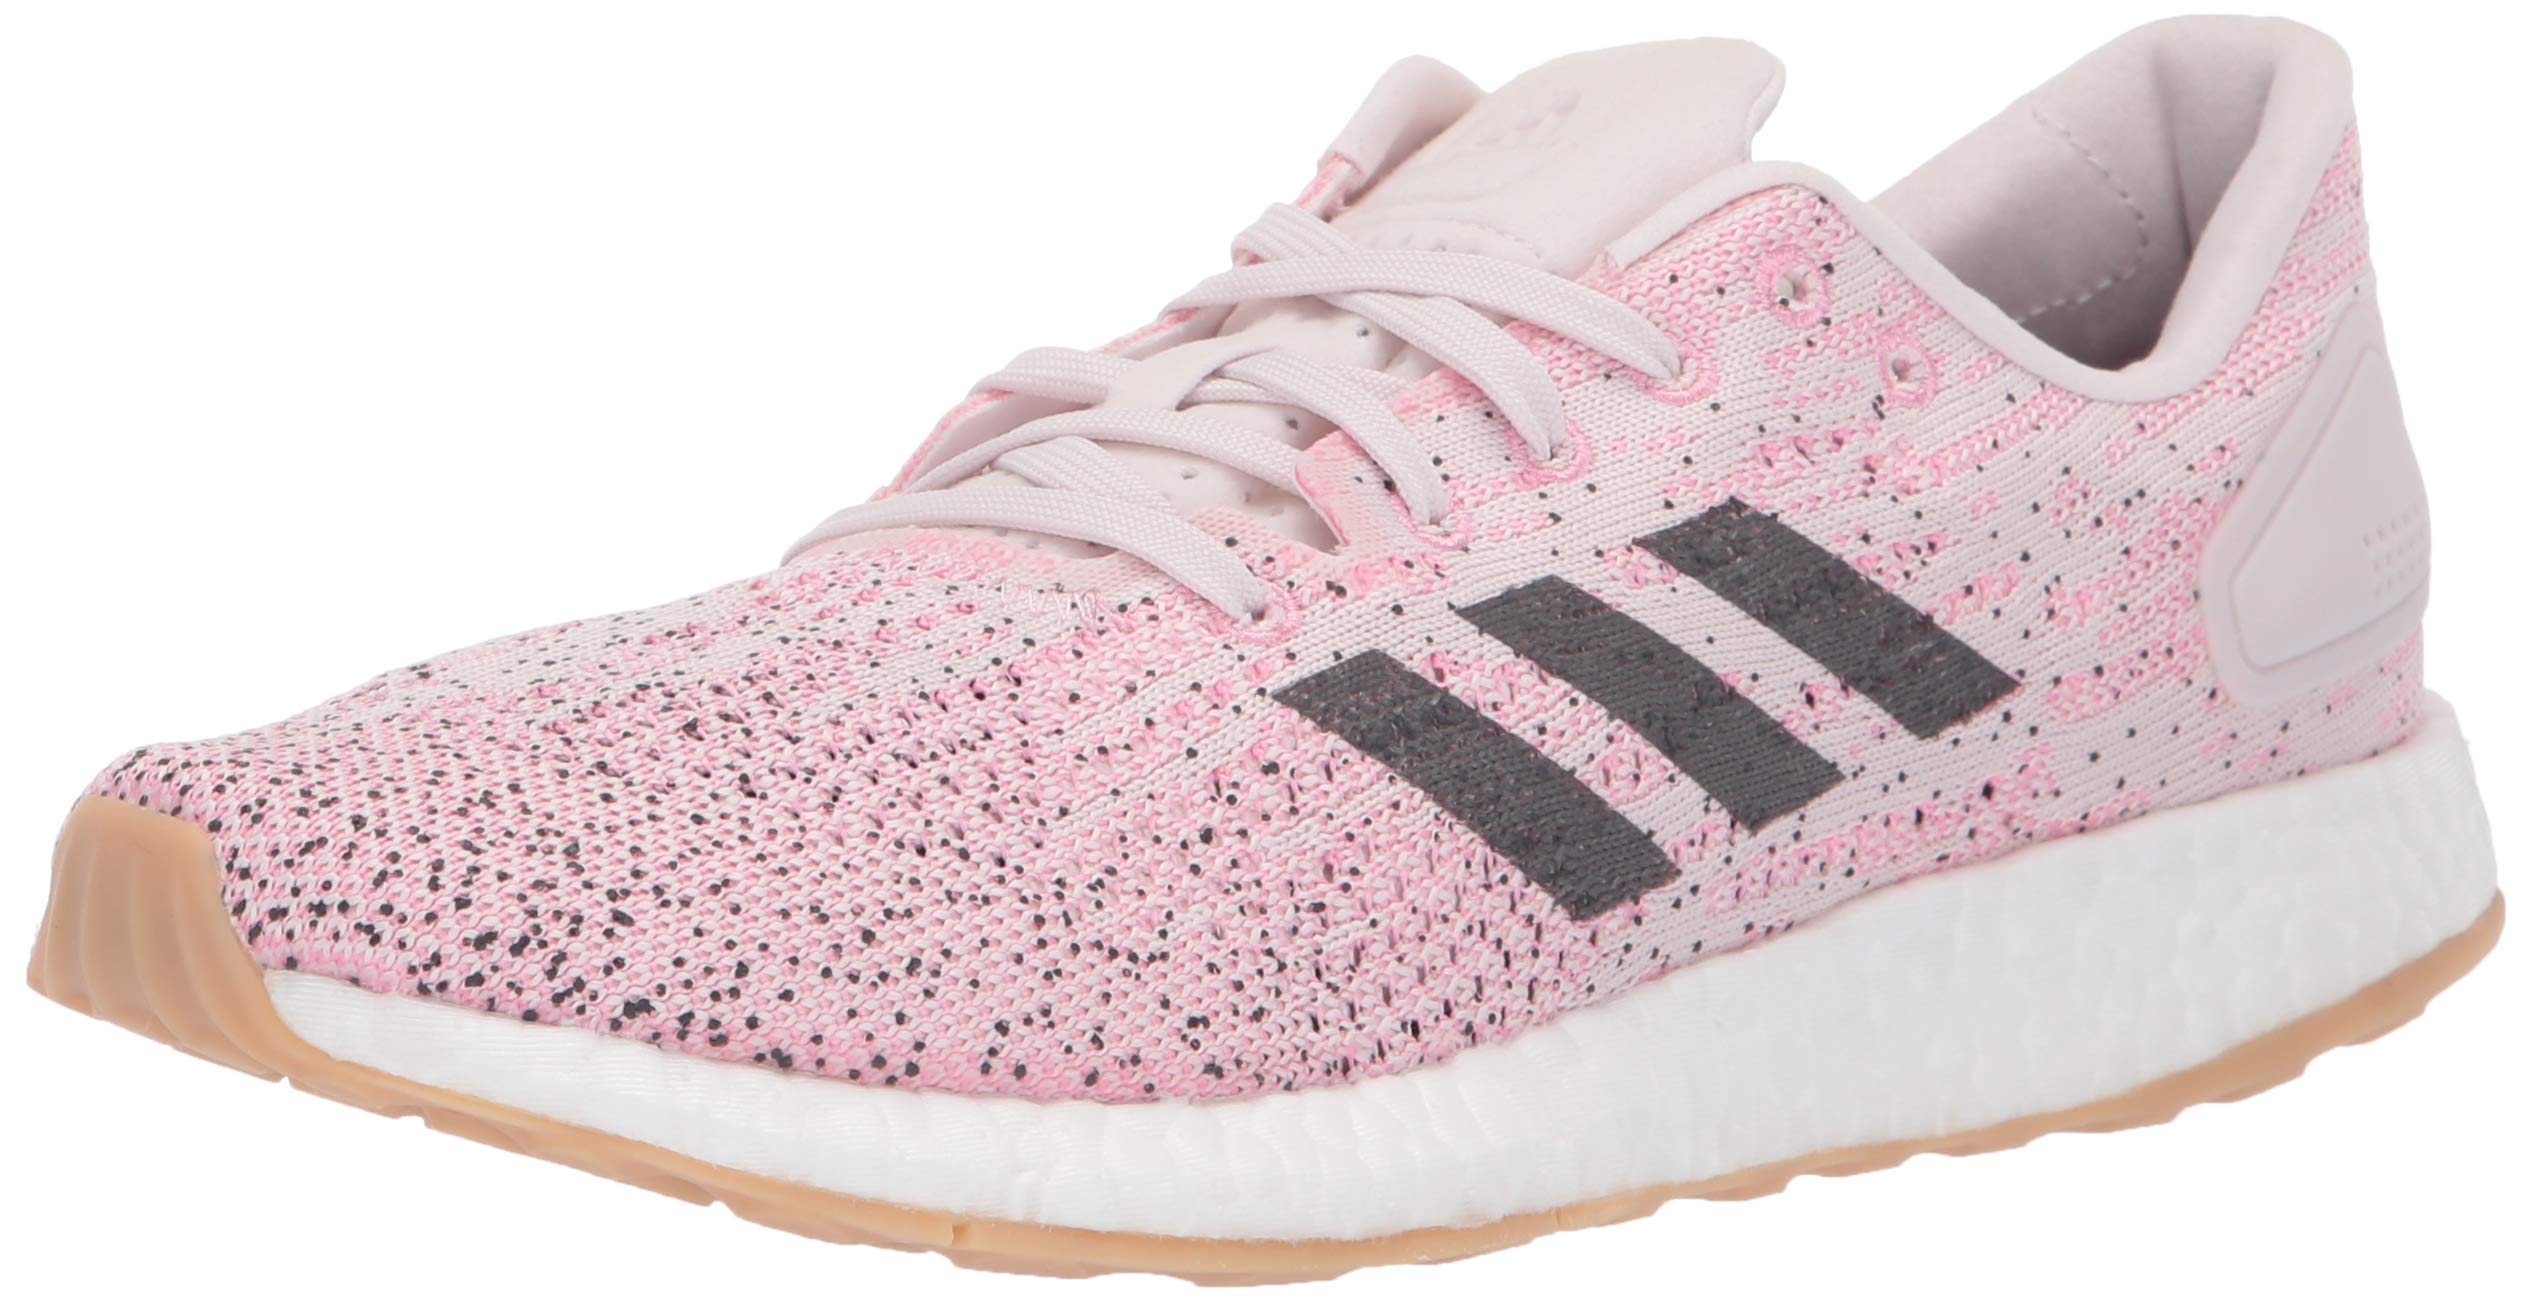 adidas Women's Pureboost DPR Running Shoes, True Pink/Carbon/Orchid Tint, 11.5 M US by adidas